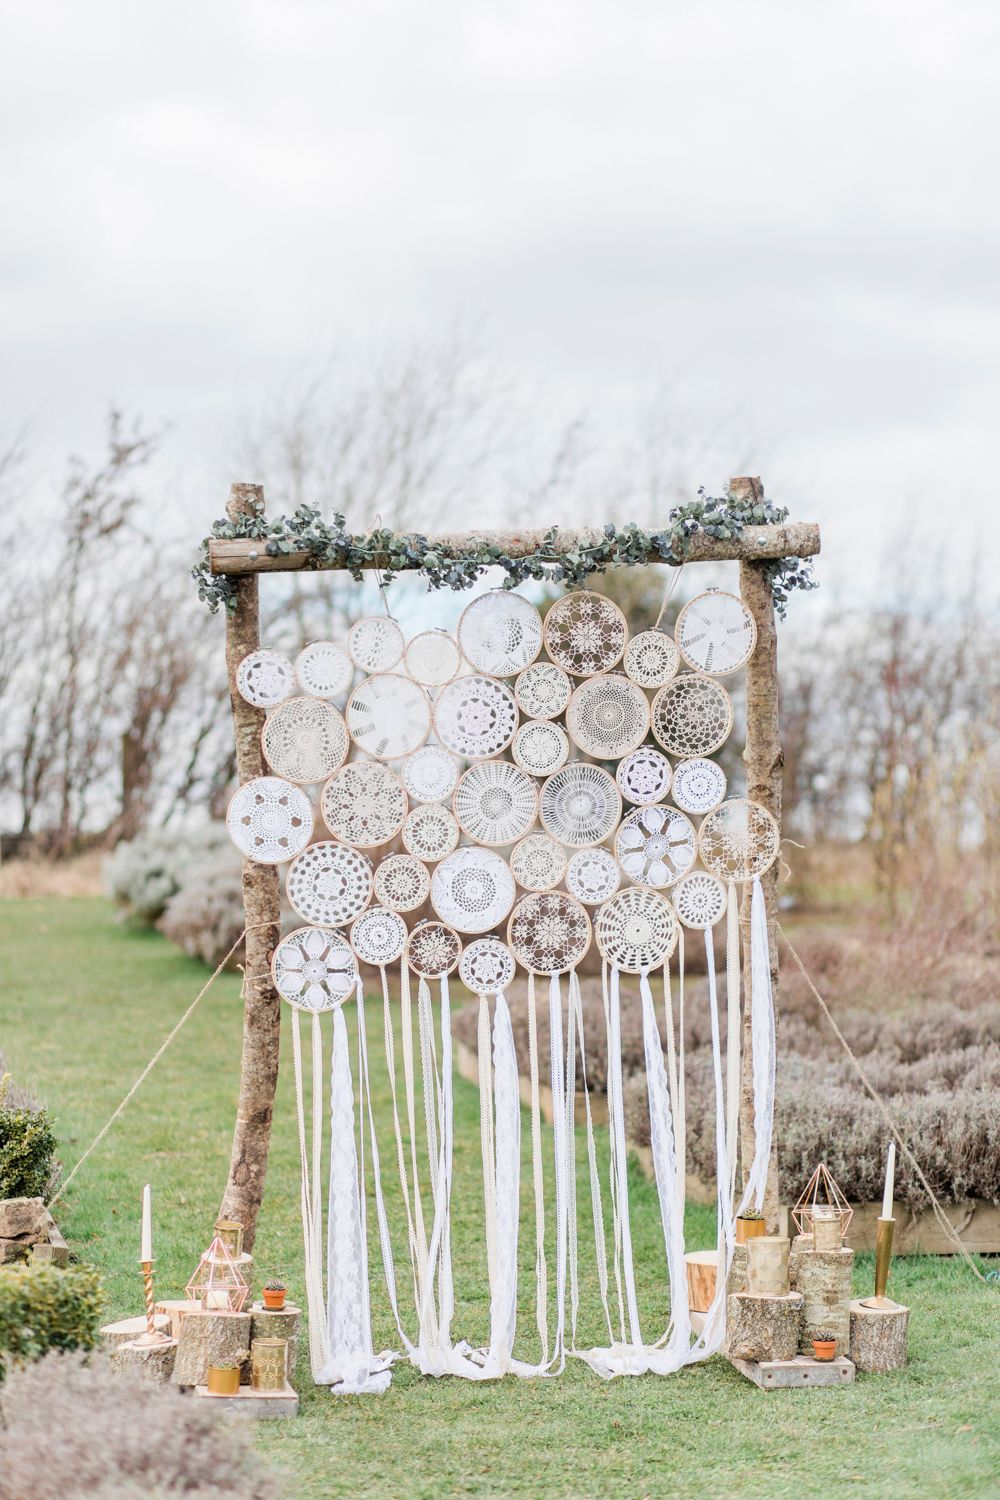 Backdrop Ceremony Wall Embroidery Hoop Dream Catchers Bohemian Greenhouse Wedding Ideas Secret Herb Garden Siobhan Stewart Photography #ceremonyideas